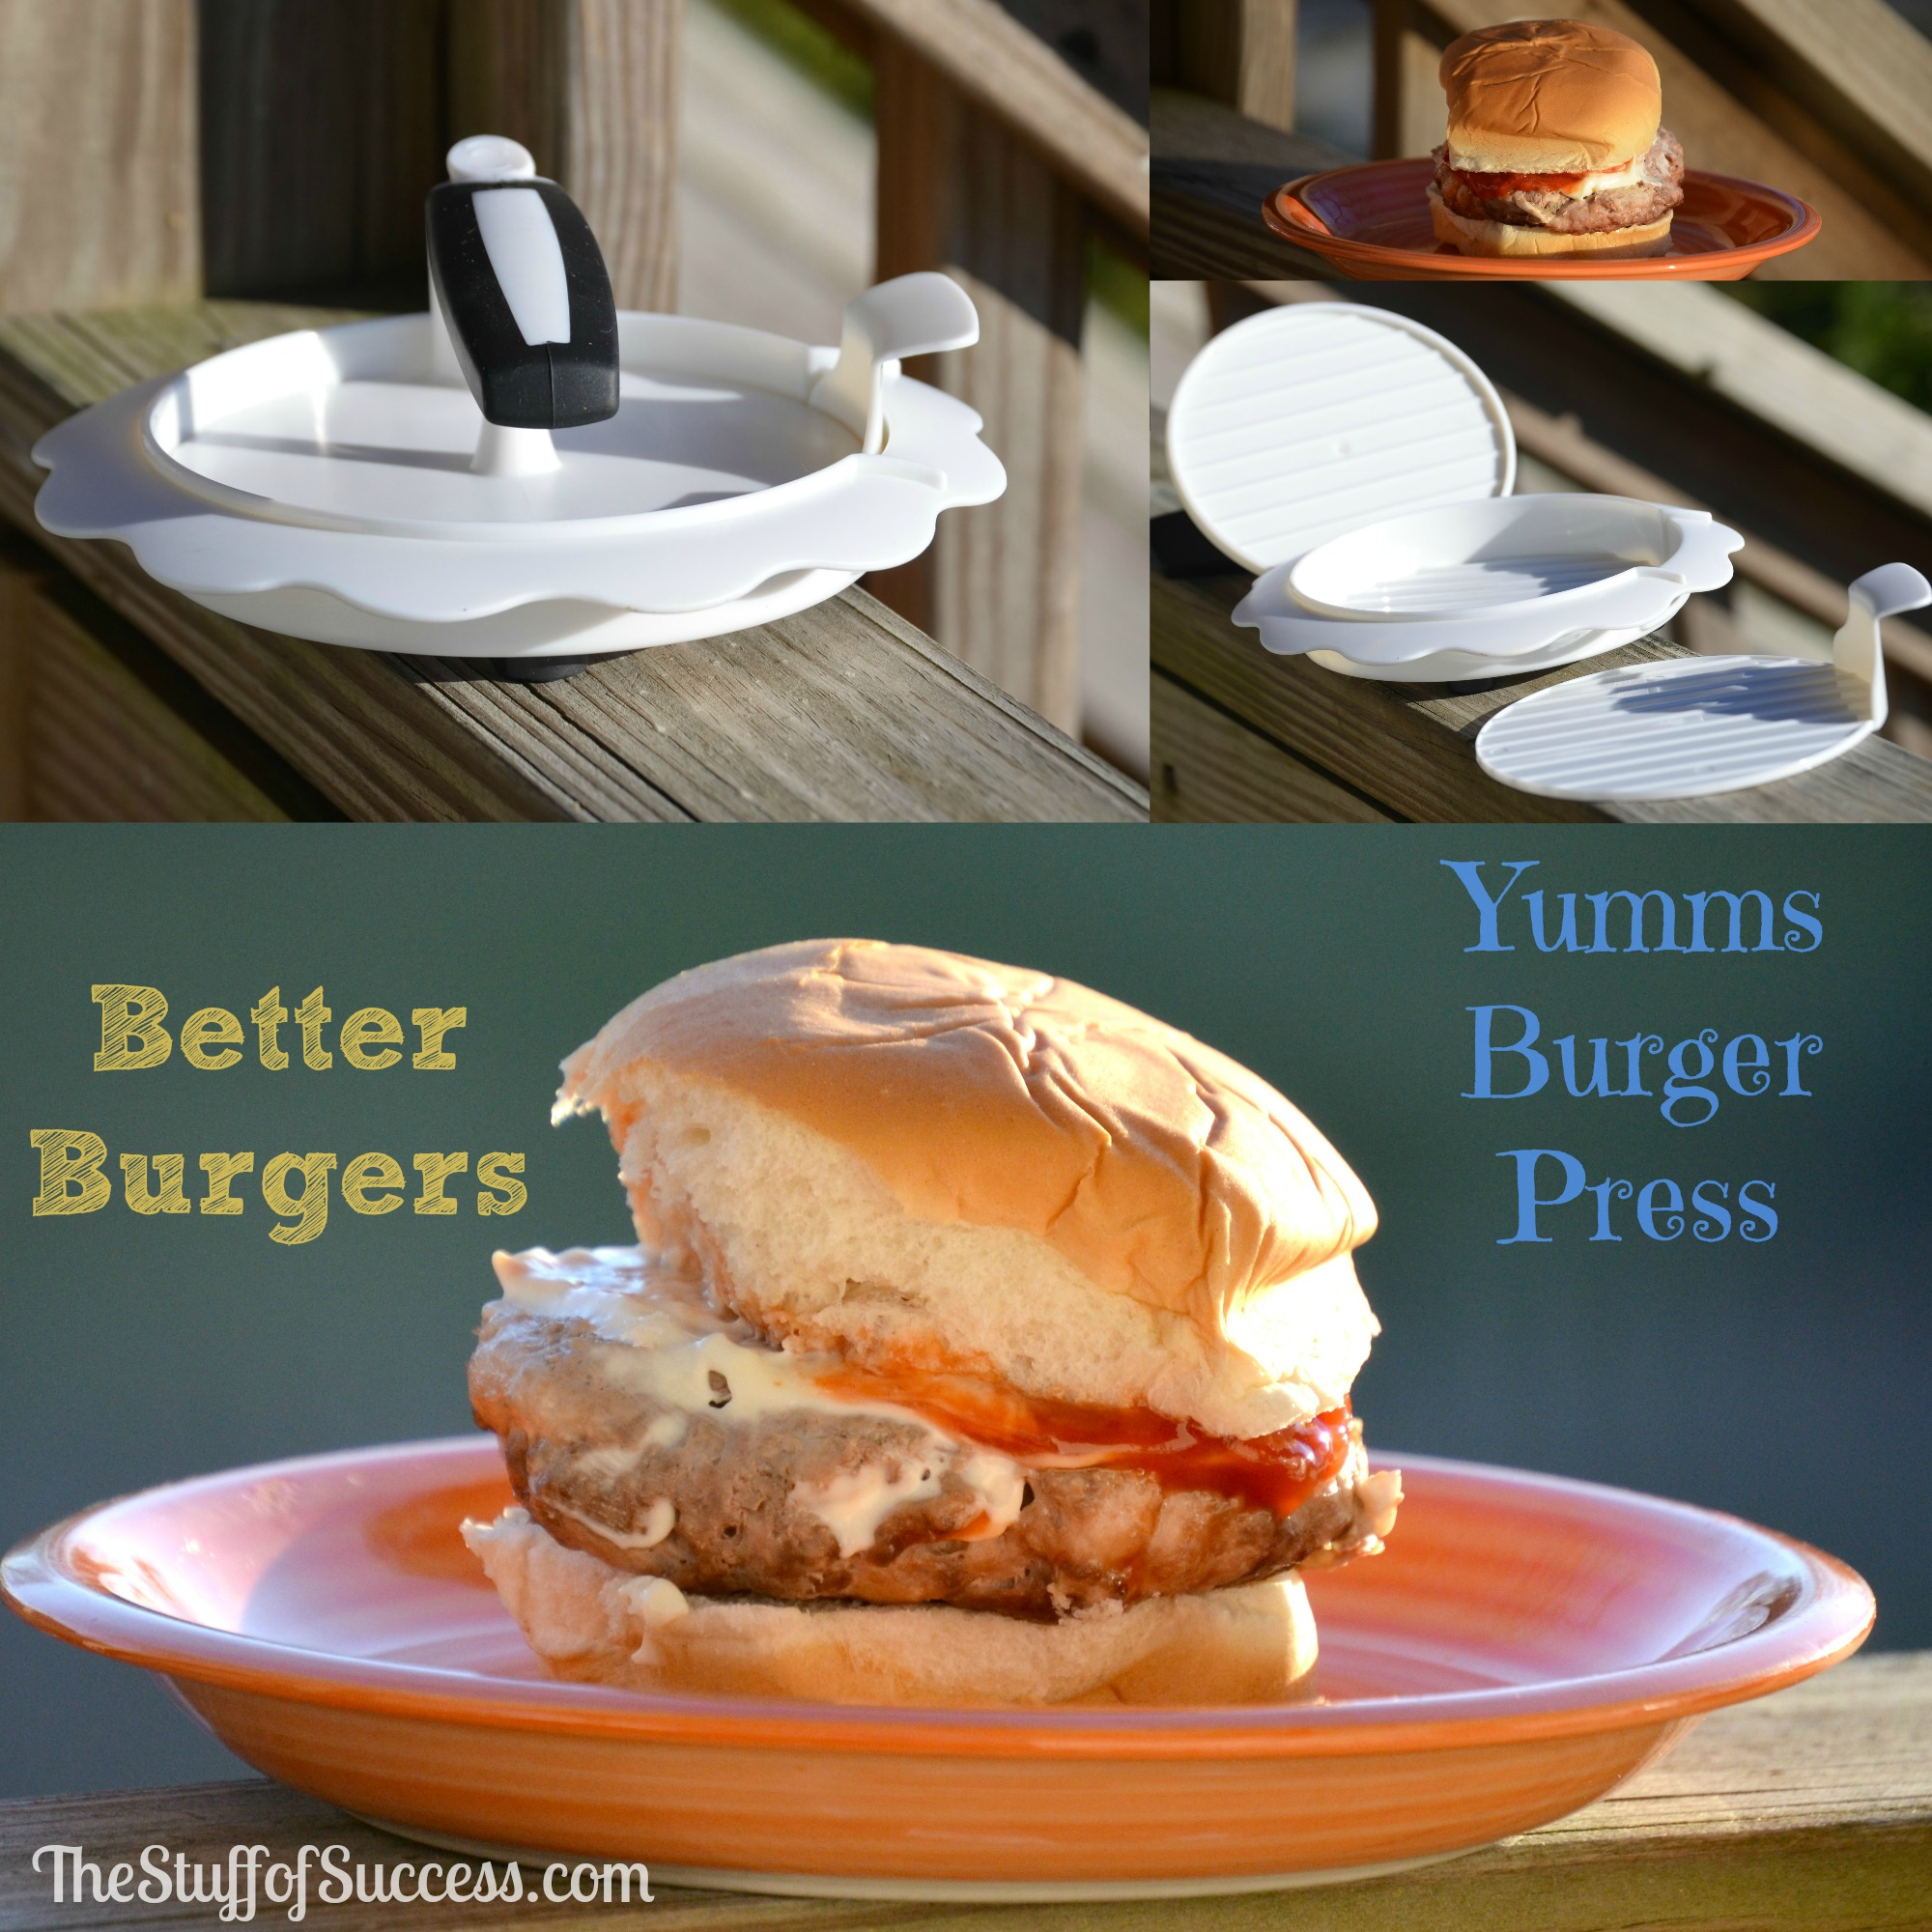 Better Burgers With a Yumms Burger Press